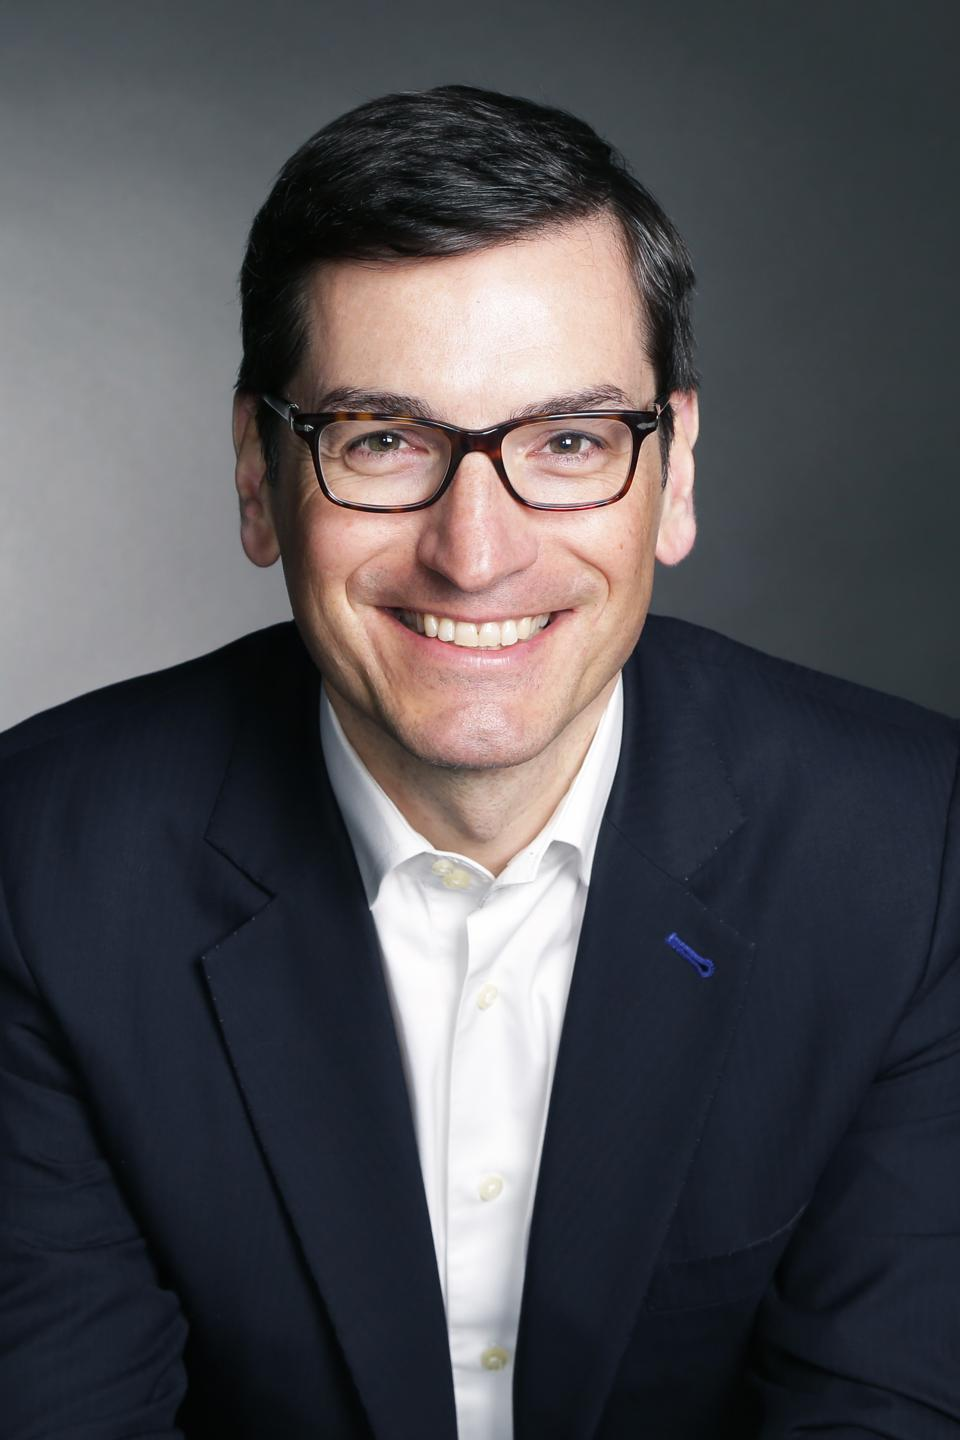 François-Marie Neycensas is the Chief Marketing Officer of Reservoir, the watch brand